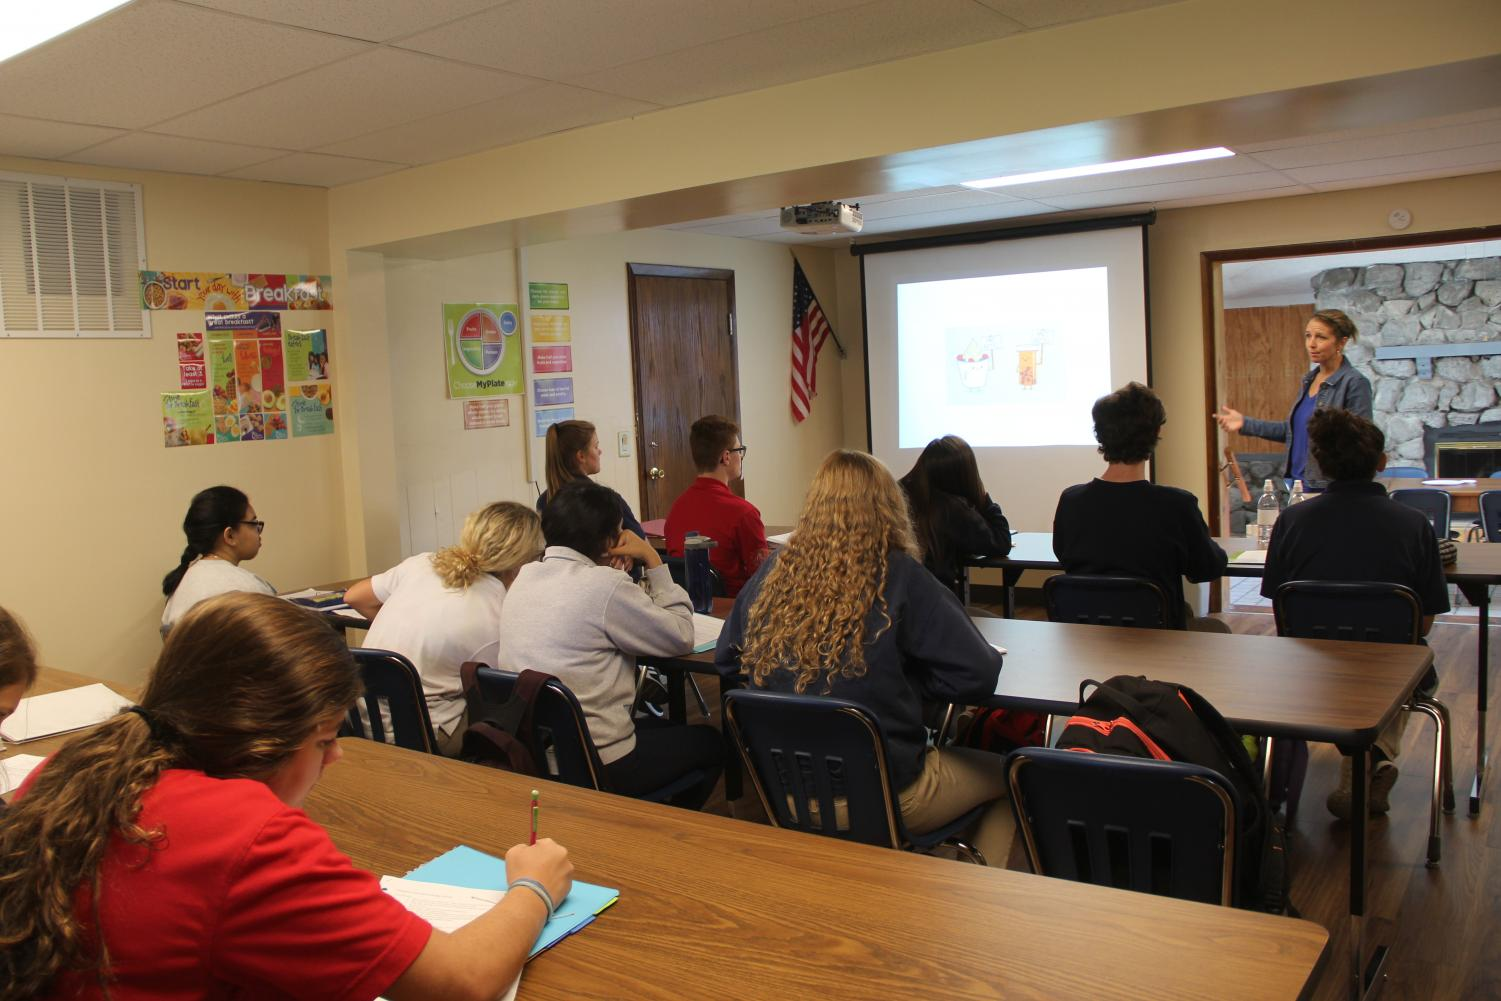 STUDYING STUDENTS: Students in fifth period take a seat to listen to Mrs. Smith explain the images on the projector. They will later turn in a study guide in preparation for their upcoming test.